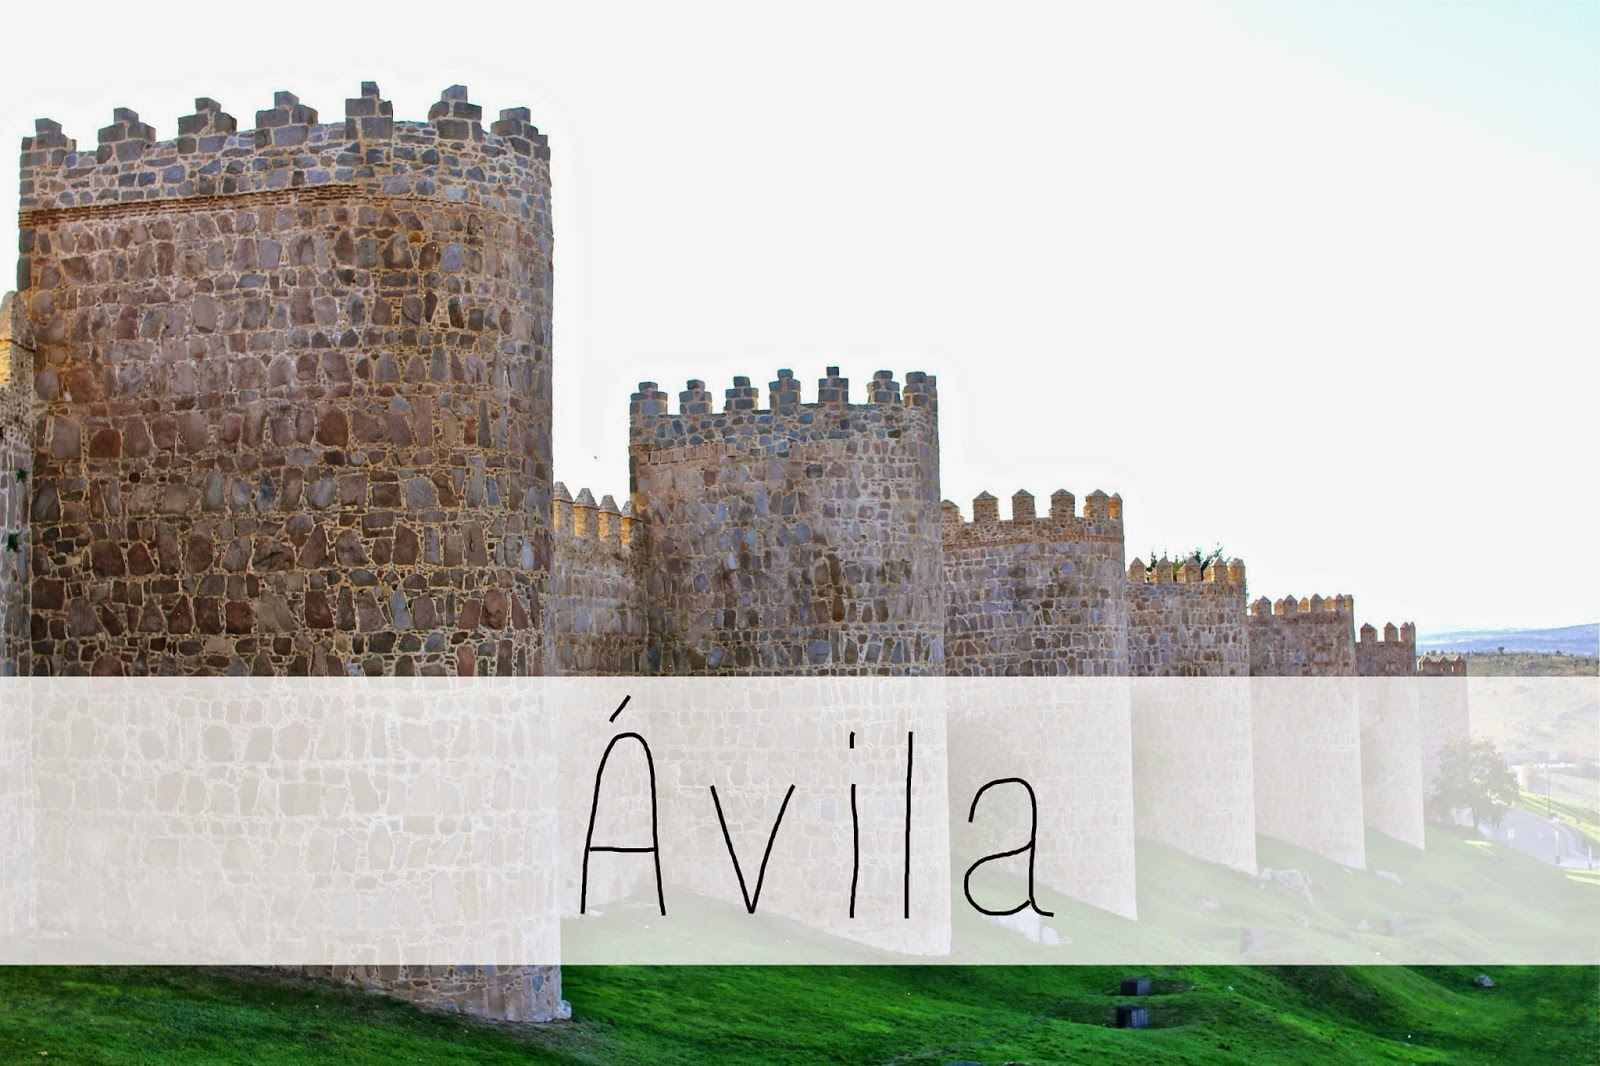 Ávila: 5 best day trips from Madrid - all less than 2 hours away from the city center! | adelanteblog.com